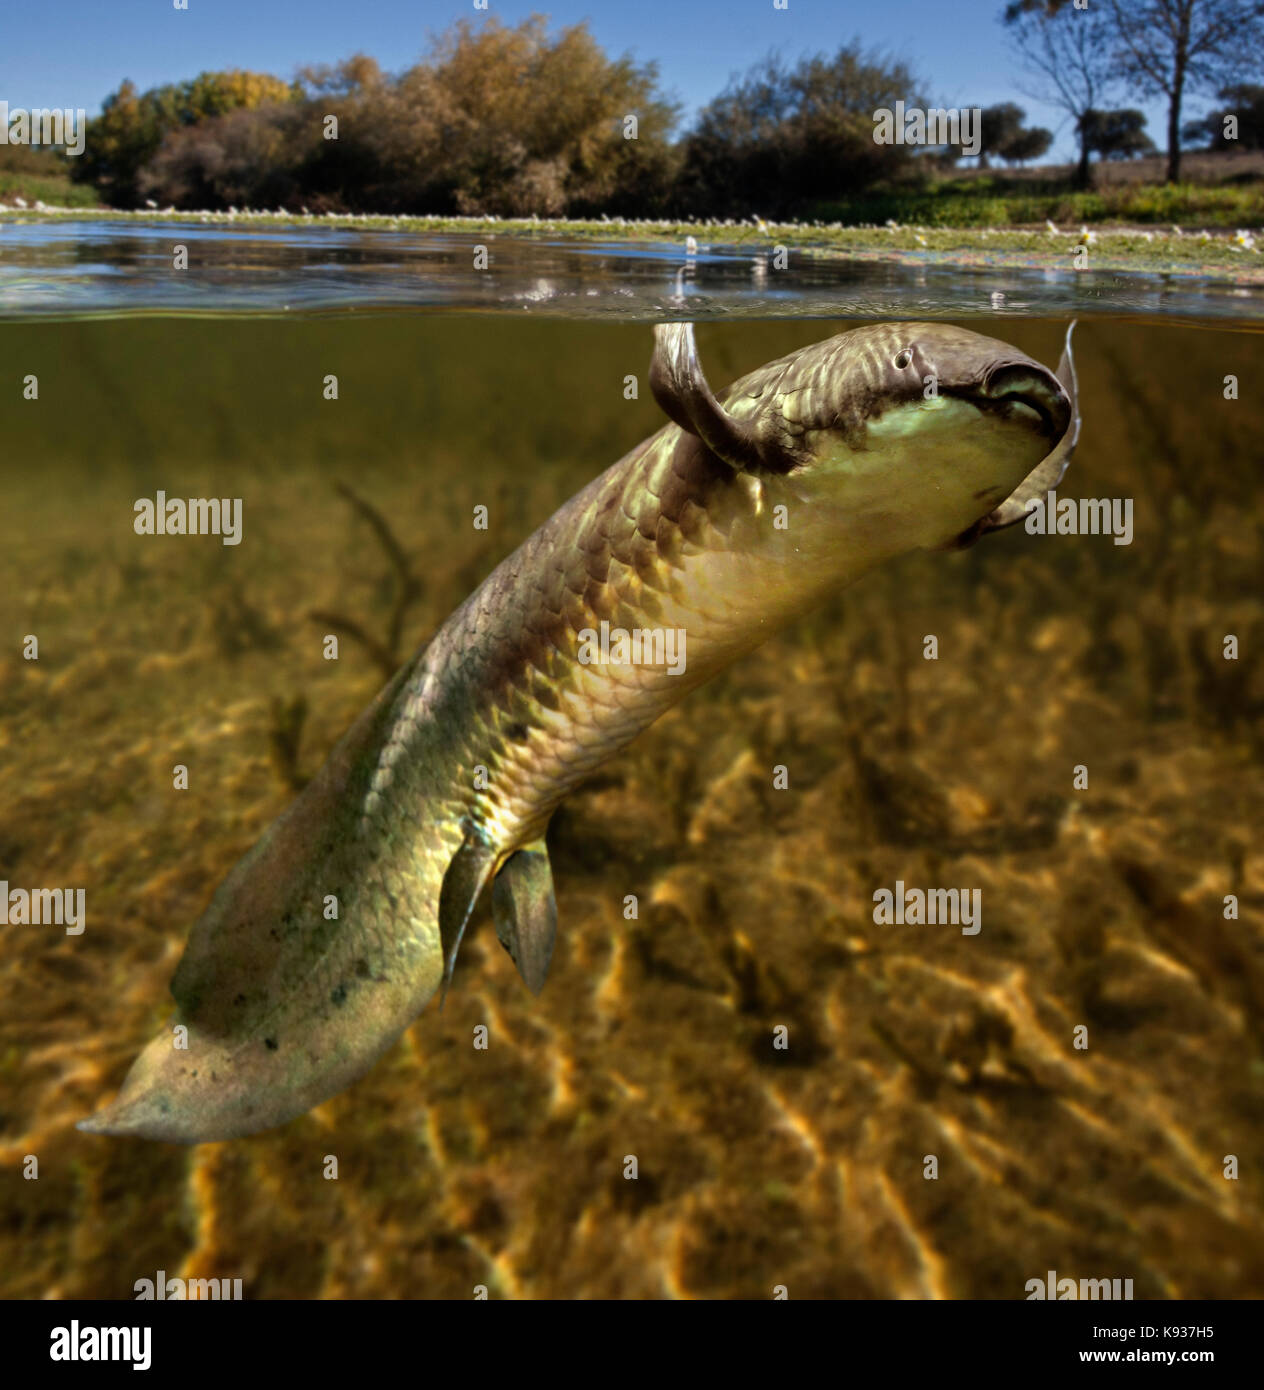 Australian lungfish, Neoceratodus forsteri . It is one of six representatives of the ancient air-breathing Dipnoi - Stock Image